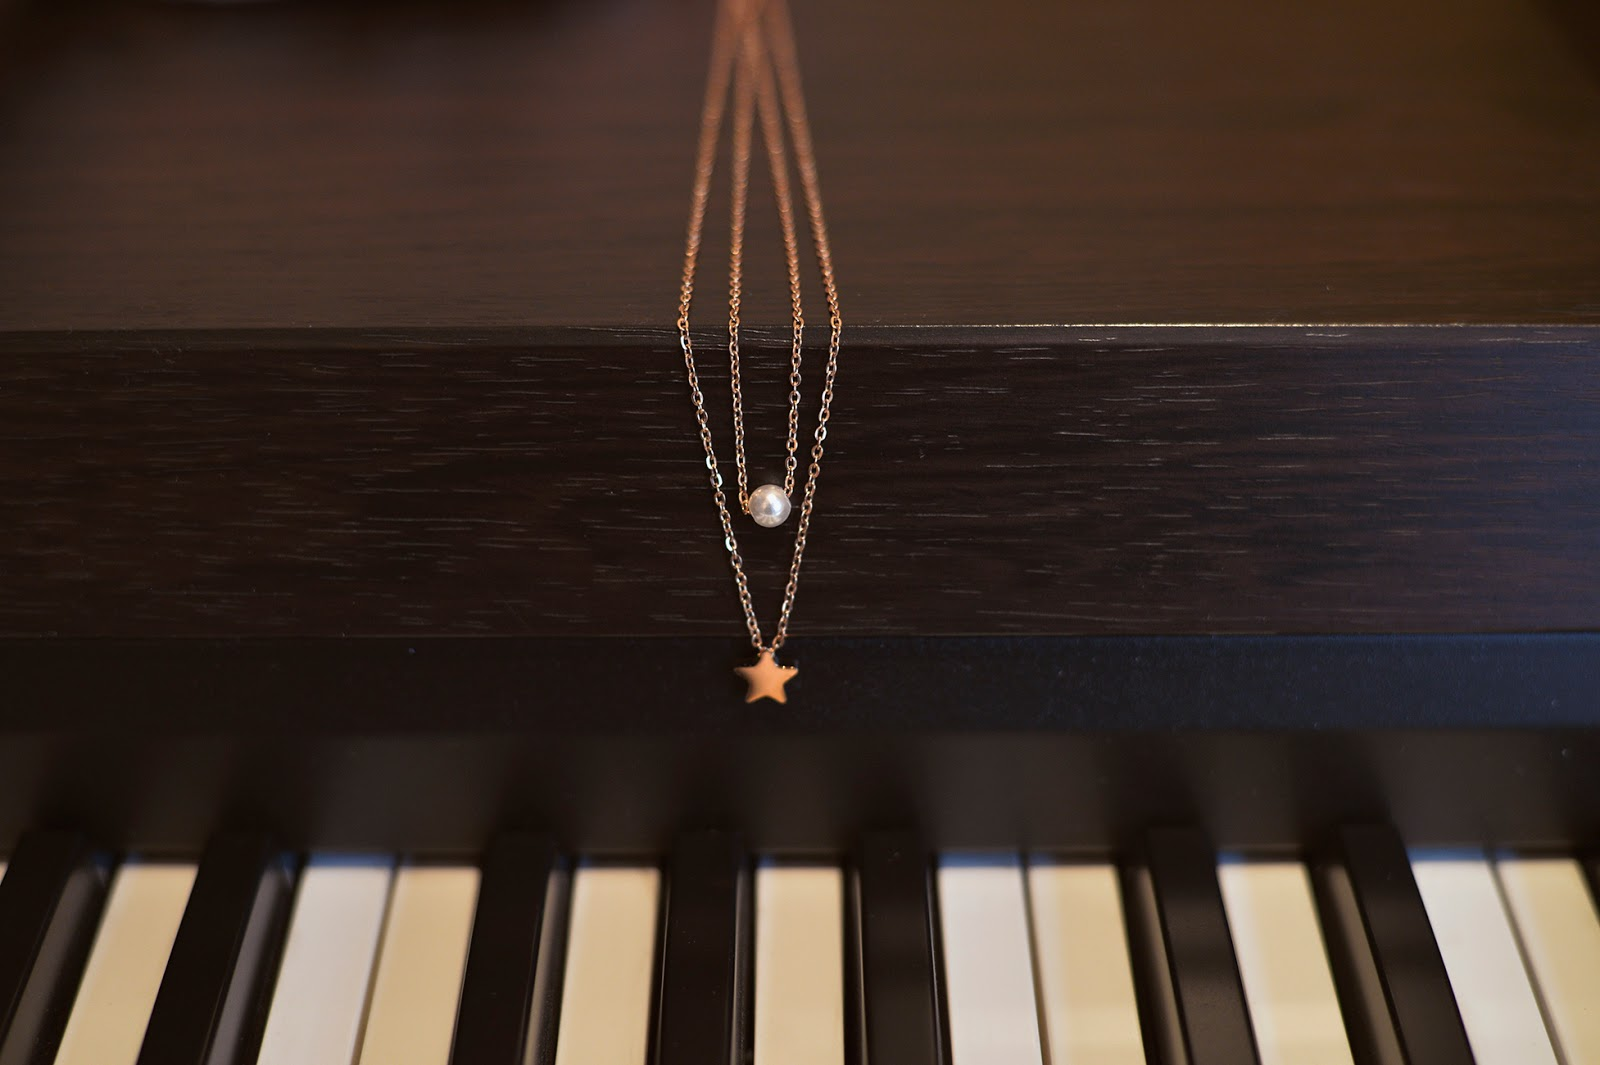 happiness boutique piano dainty jewelry fashion editorial blogger